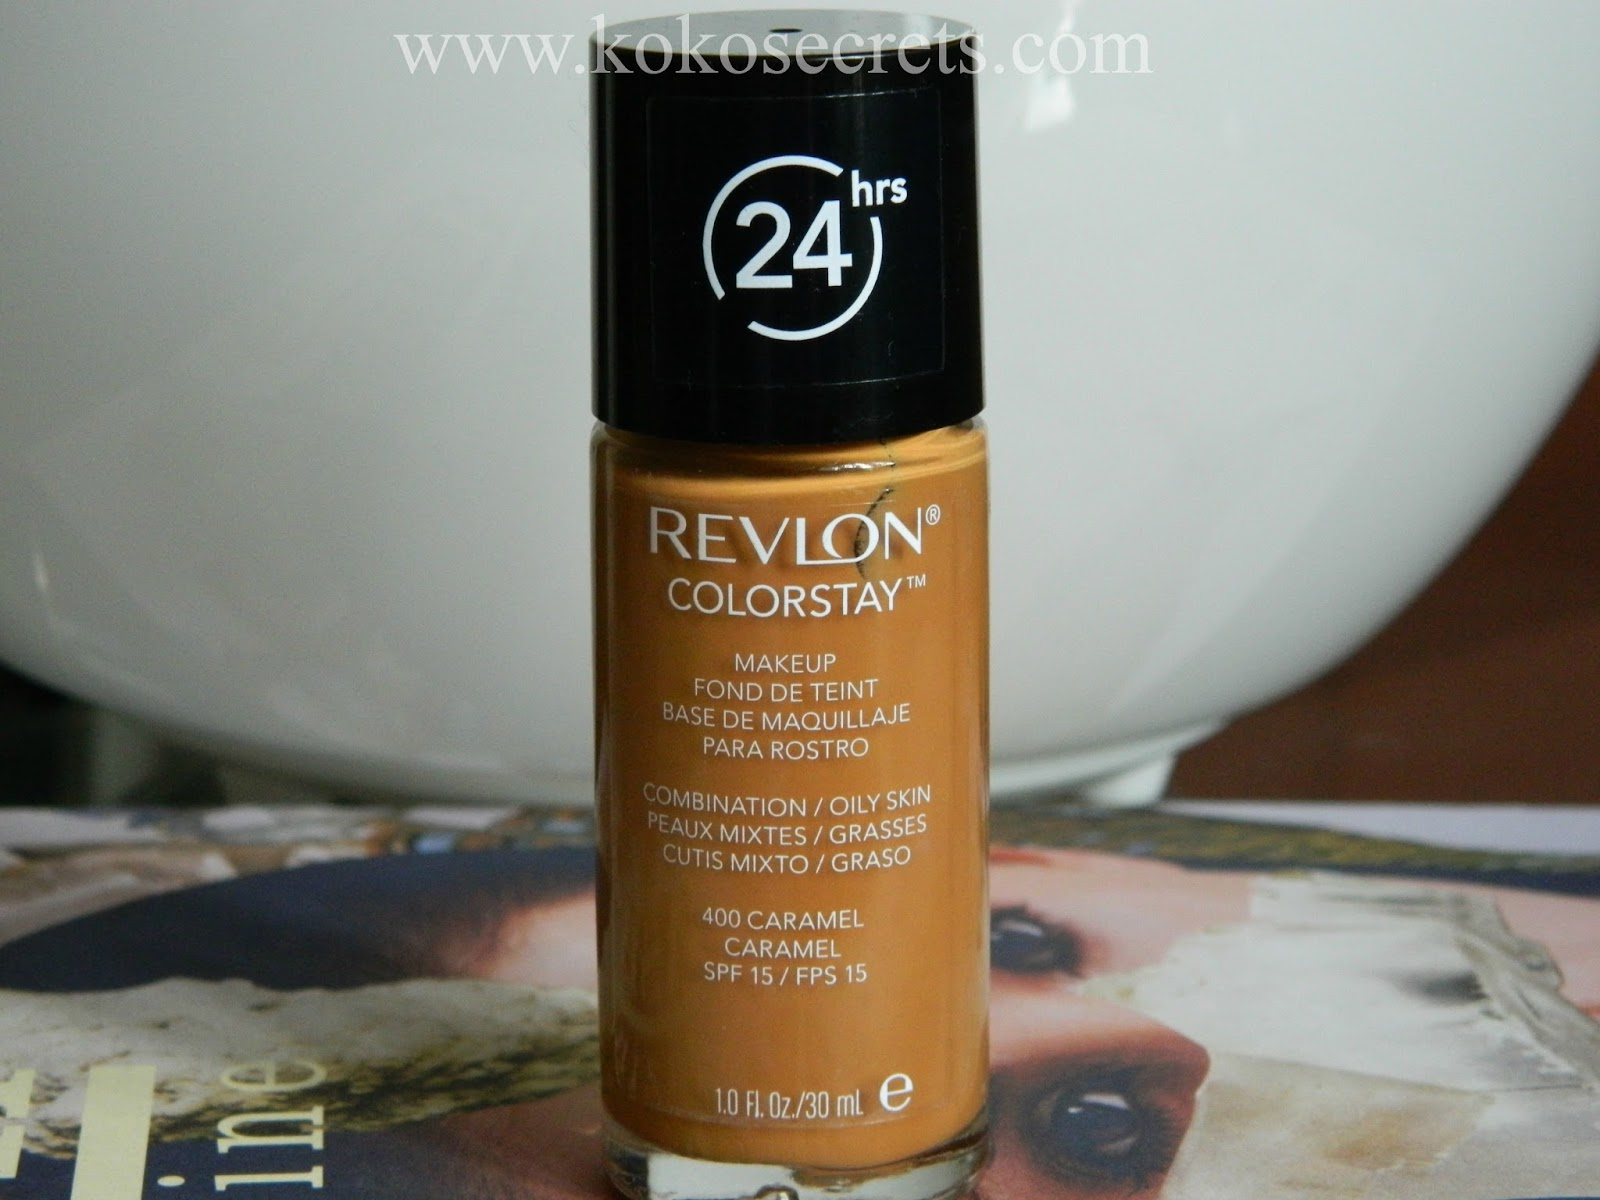 A Perfect Match? REVLON Colorstay Foundation in Caramel | Kokosecrets